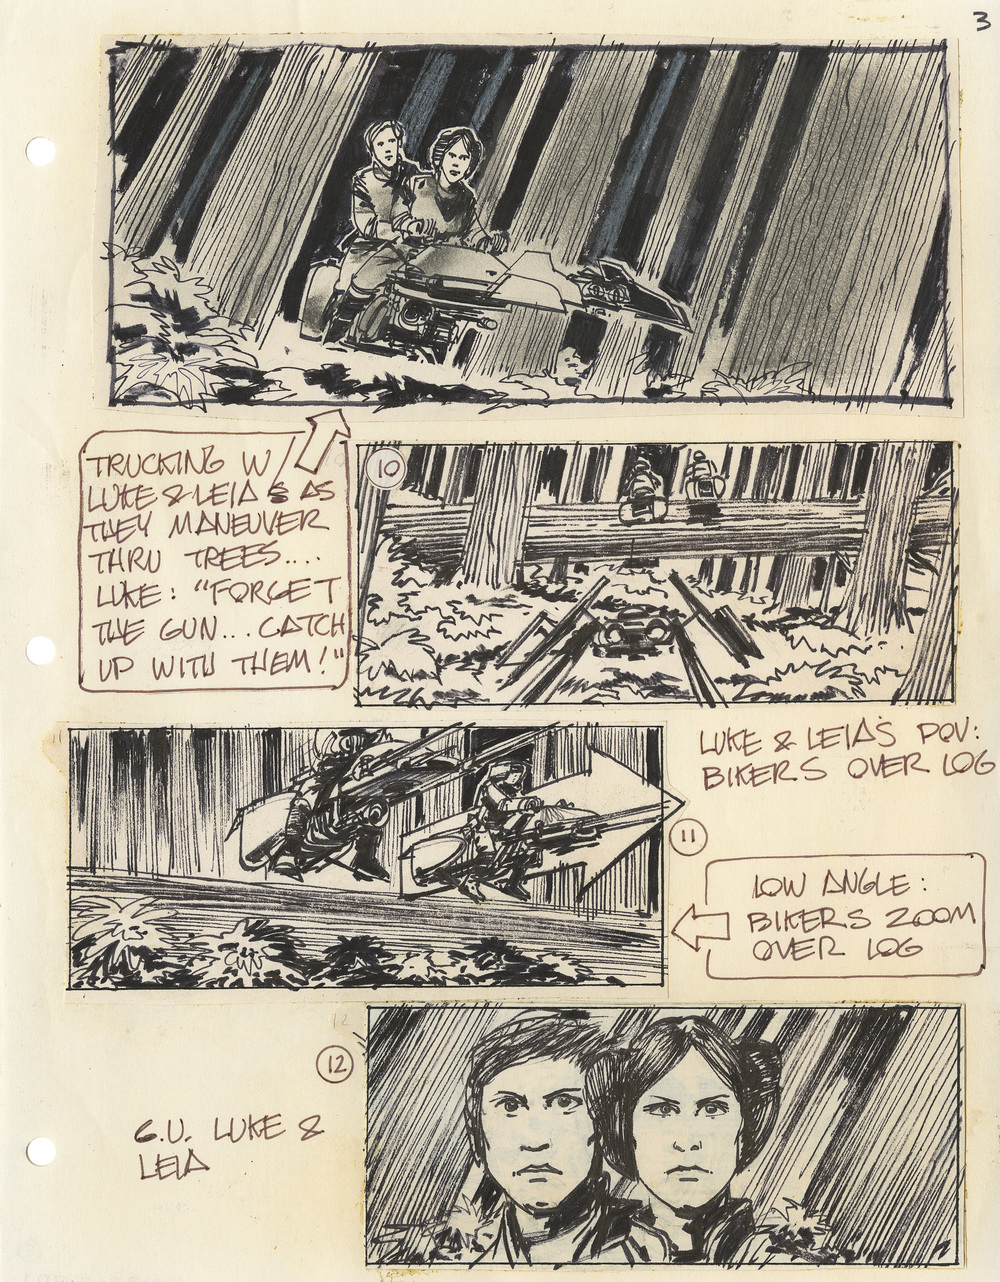 A giant log bars Luke and Leia's path – Joe Johnston